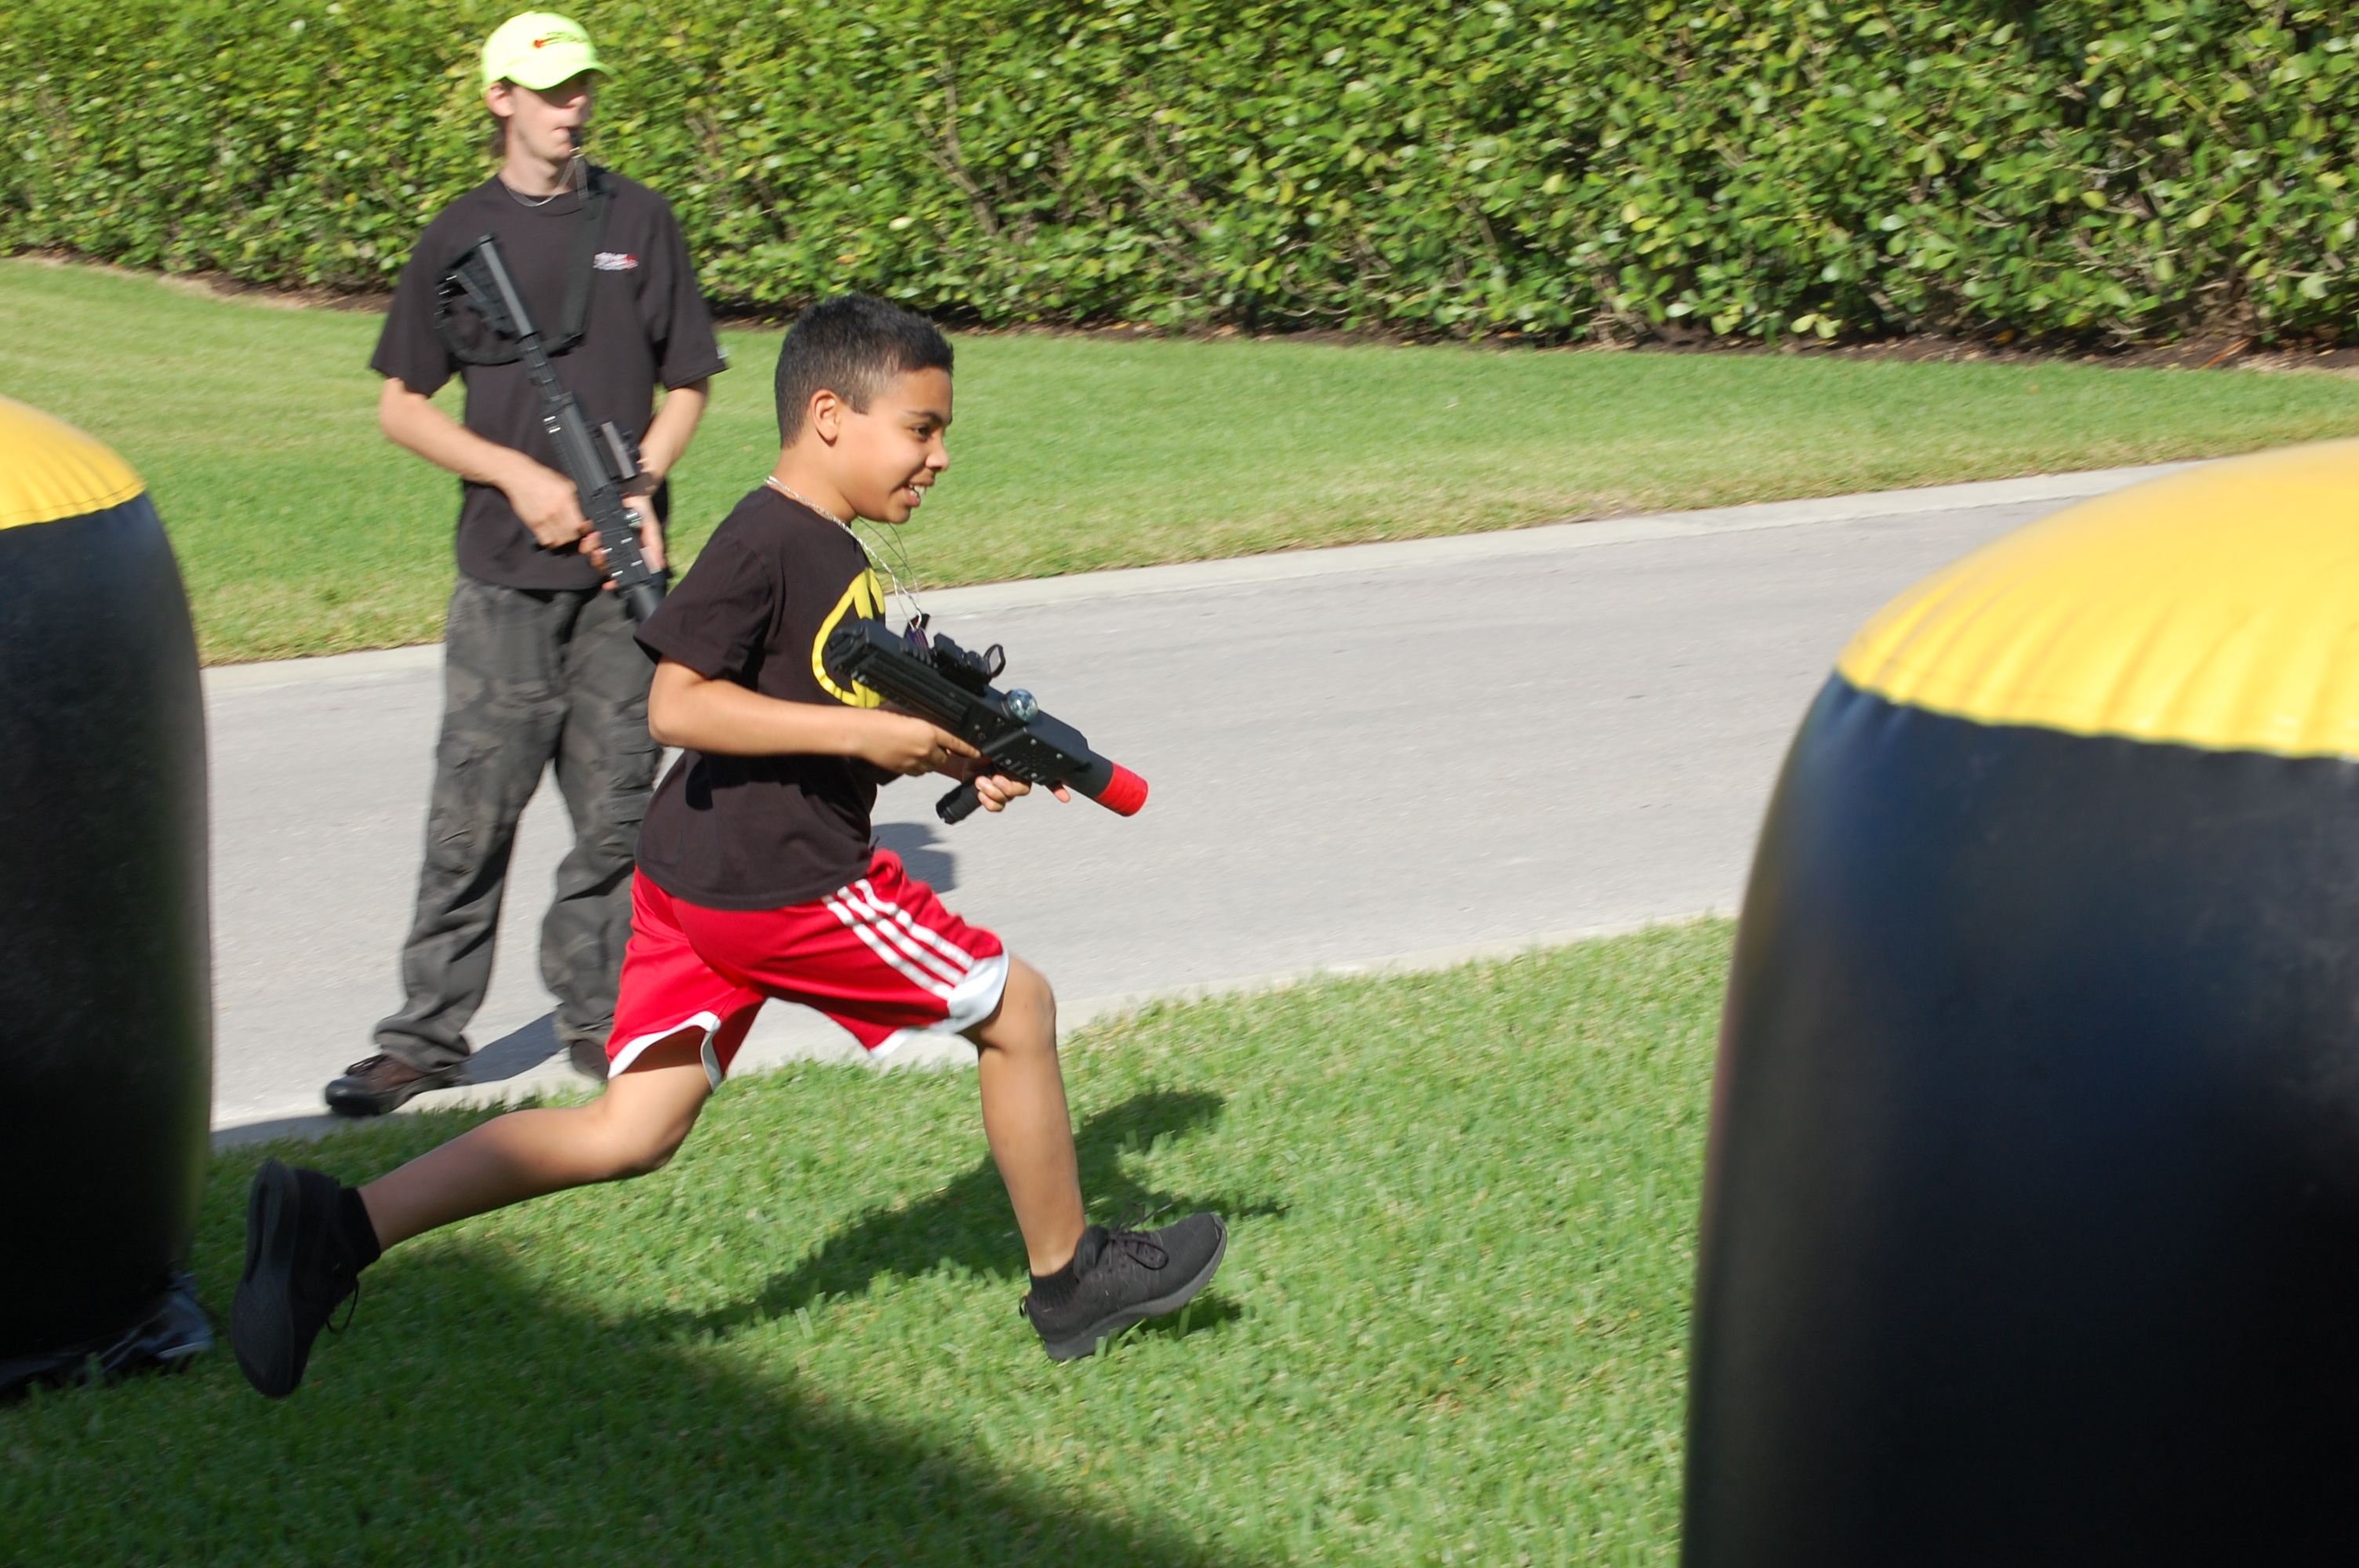 Mobile Laser Tag in Ft. Myers